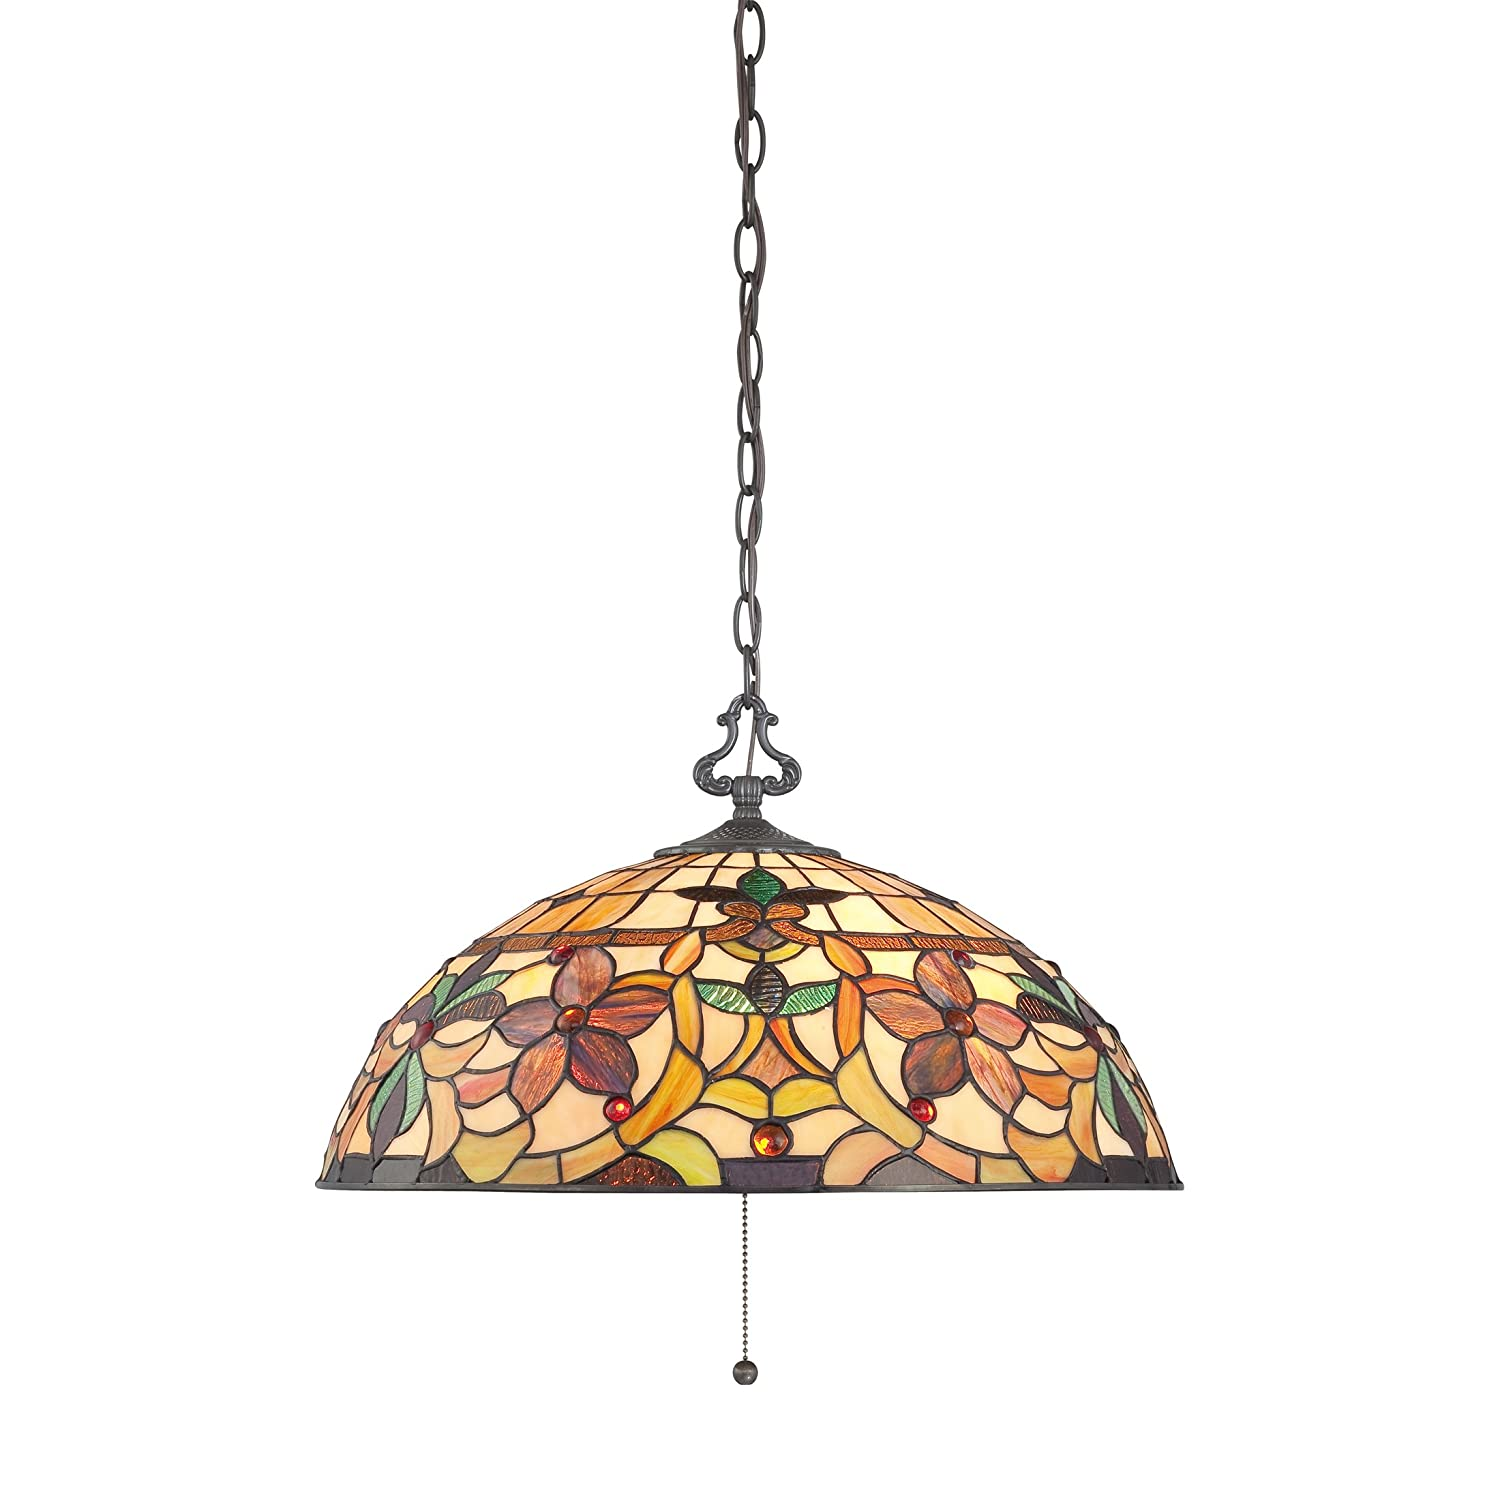 Quoizel TF878CVB Kami 3 Light Tiffany Hanging Pendant Lamp